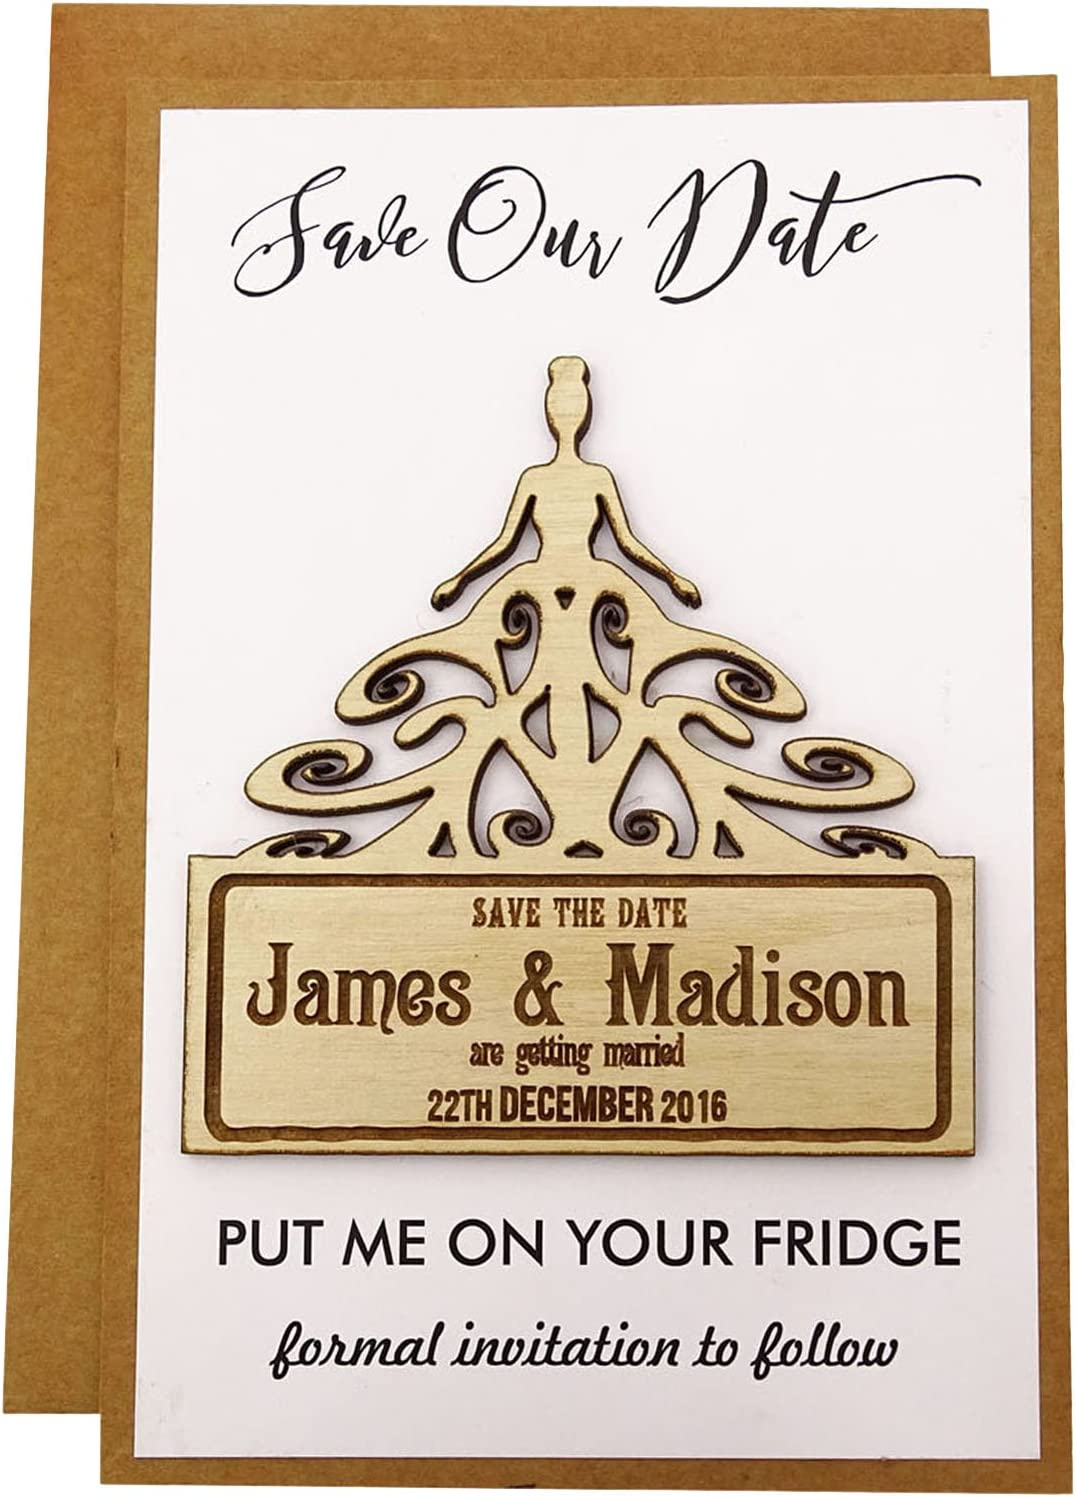 20 Custom Engraved Wooden Magnet Rustic Save Wedding We OFFer at Purchase cheap prices the Wo Date